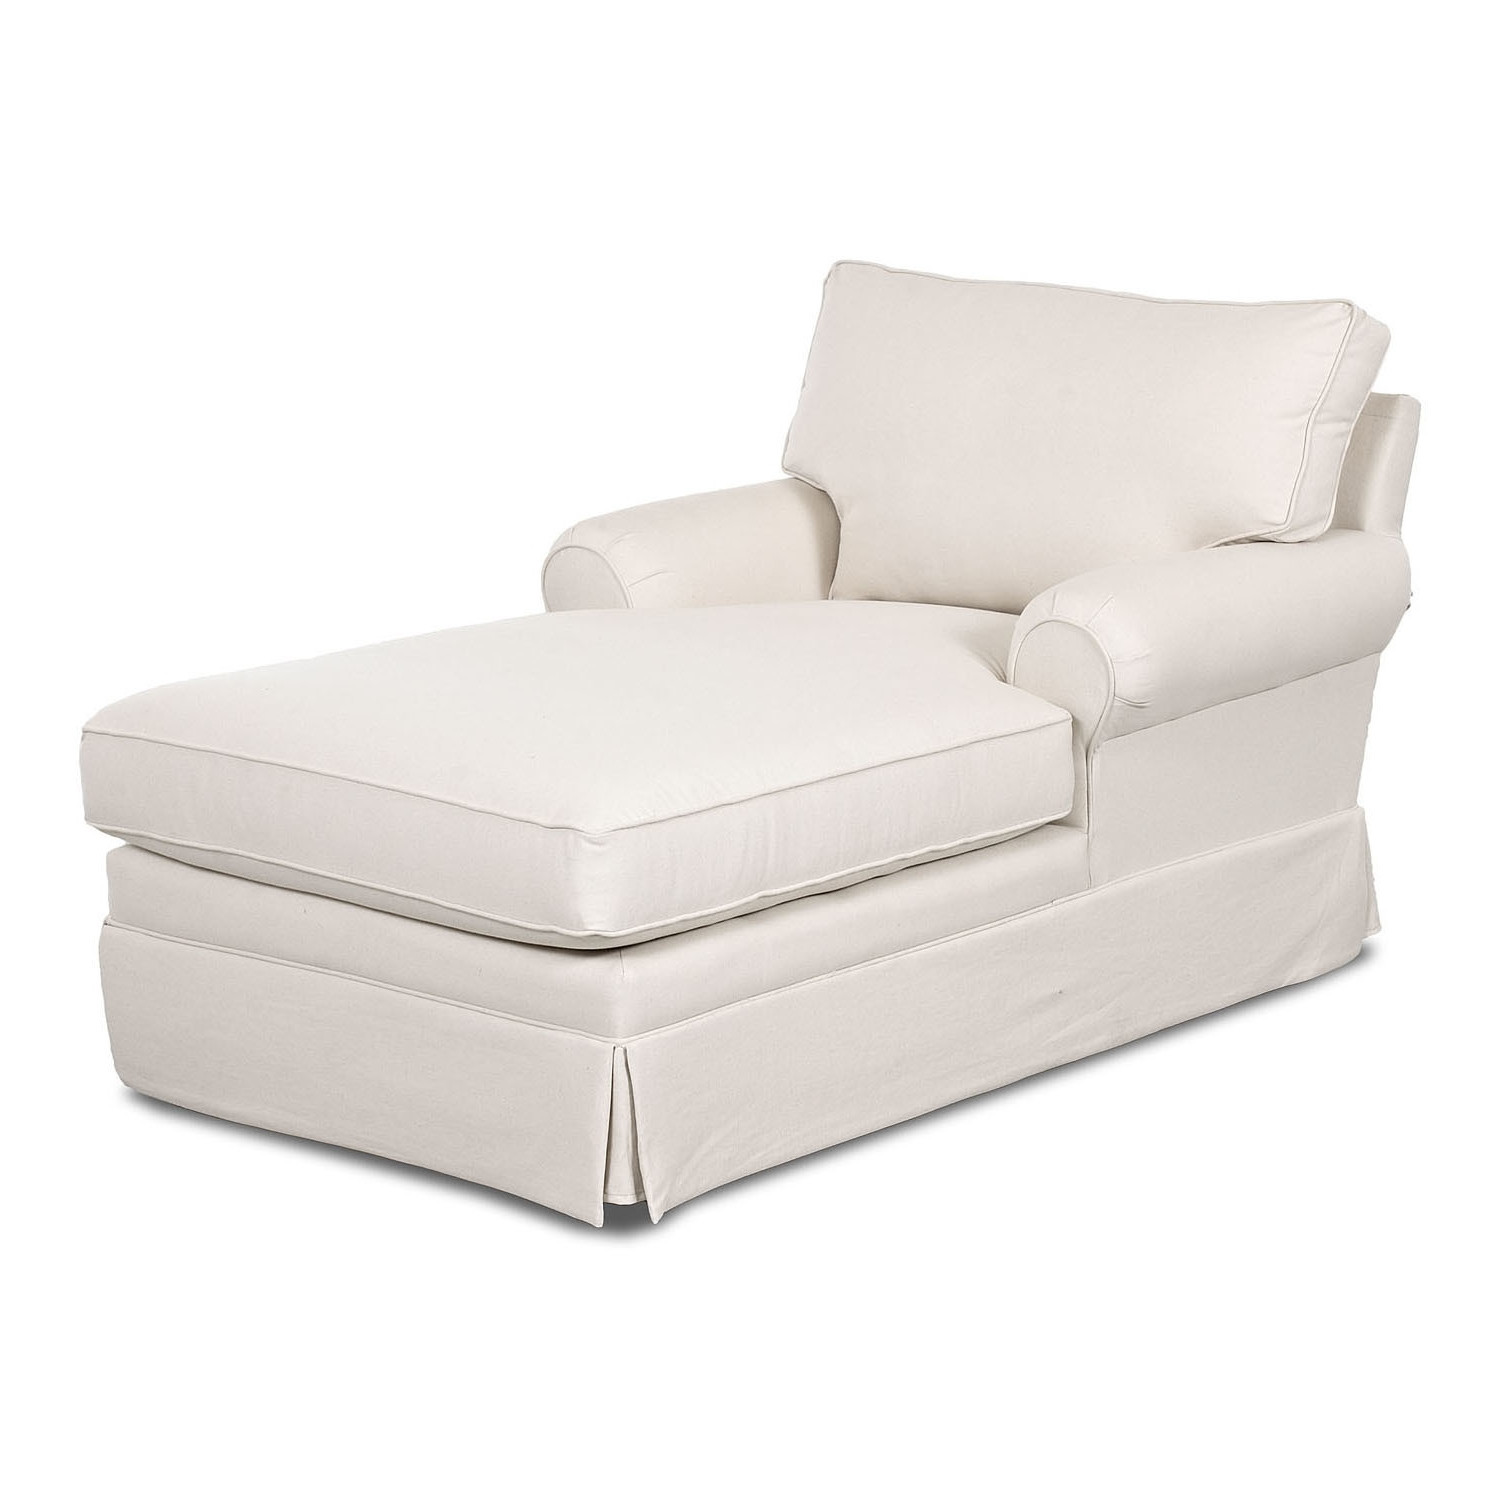 Nice Chaise Lounge Slipcover With Decor Comfortable Lounge Chair With Most Up To Date Chaise Lounge Chairs With Arms Slipcover (View 13 of 15)